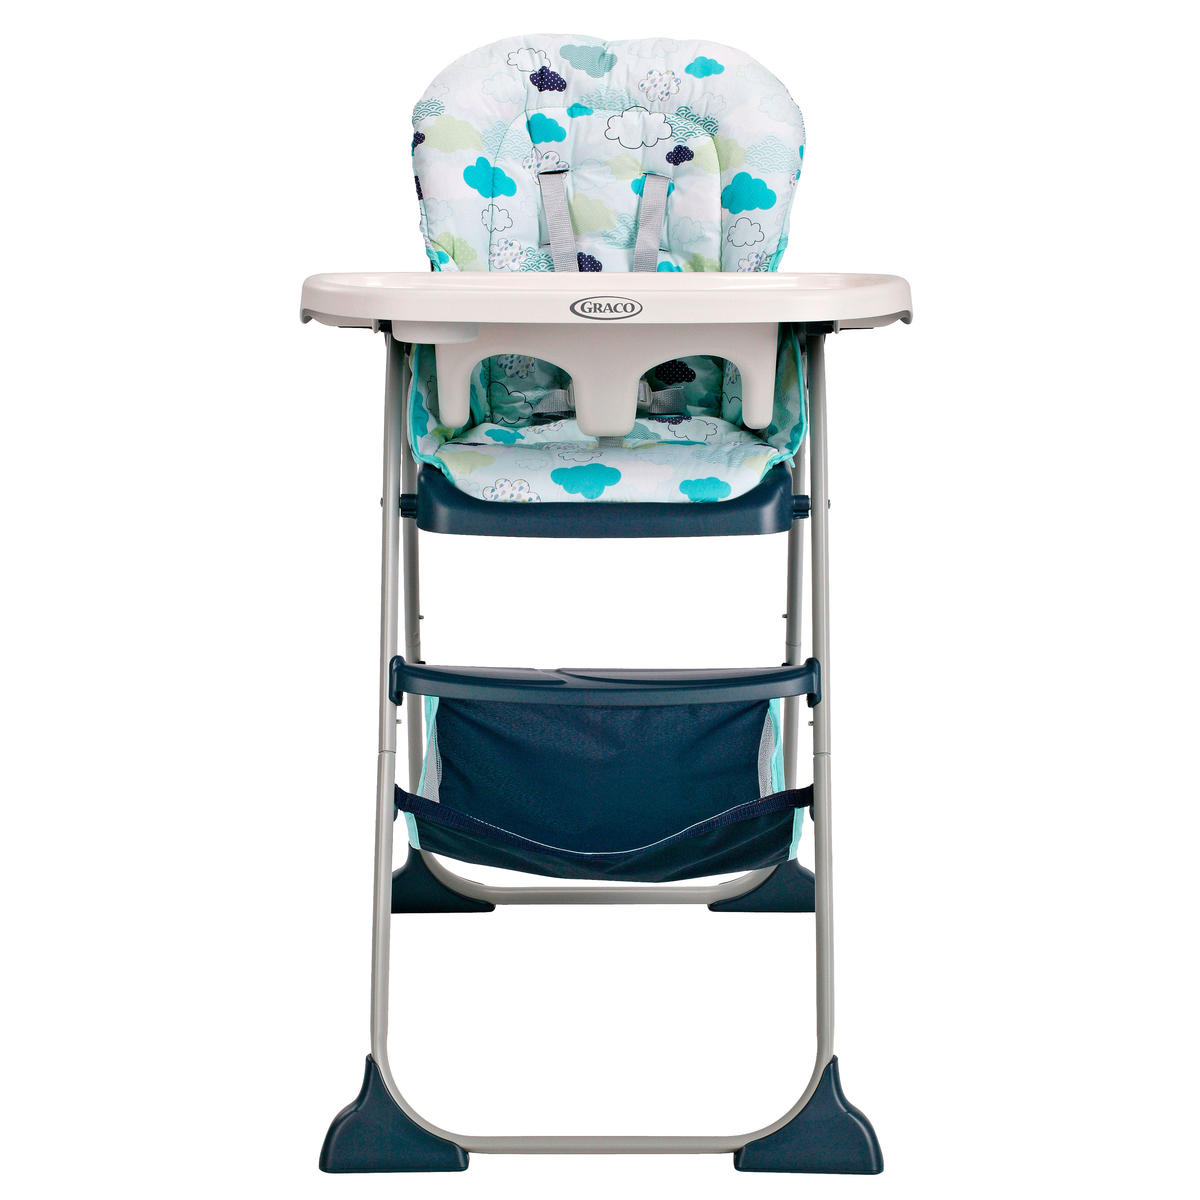 Best Full Size High Chair